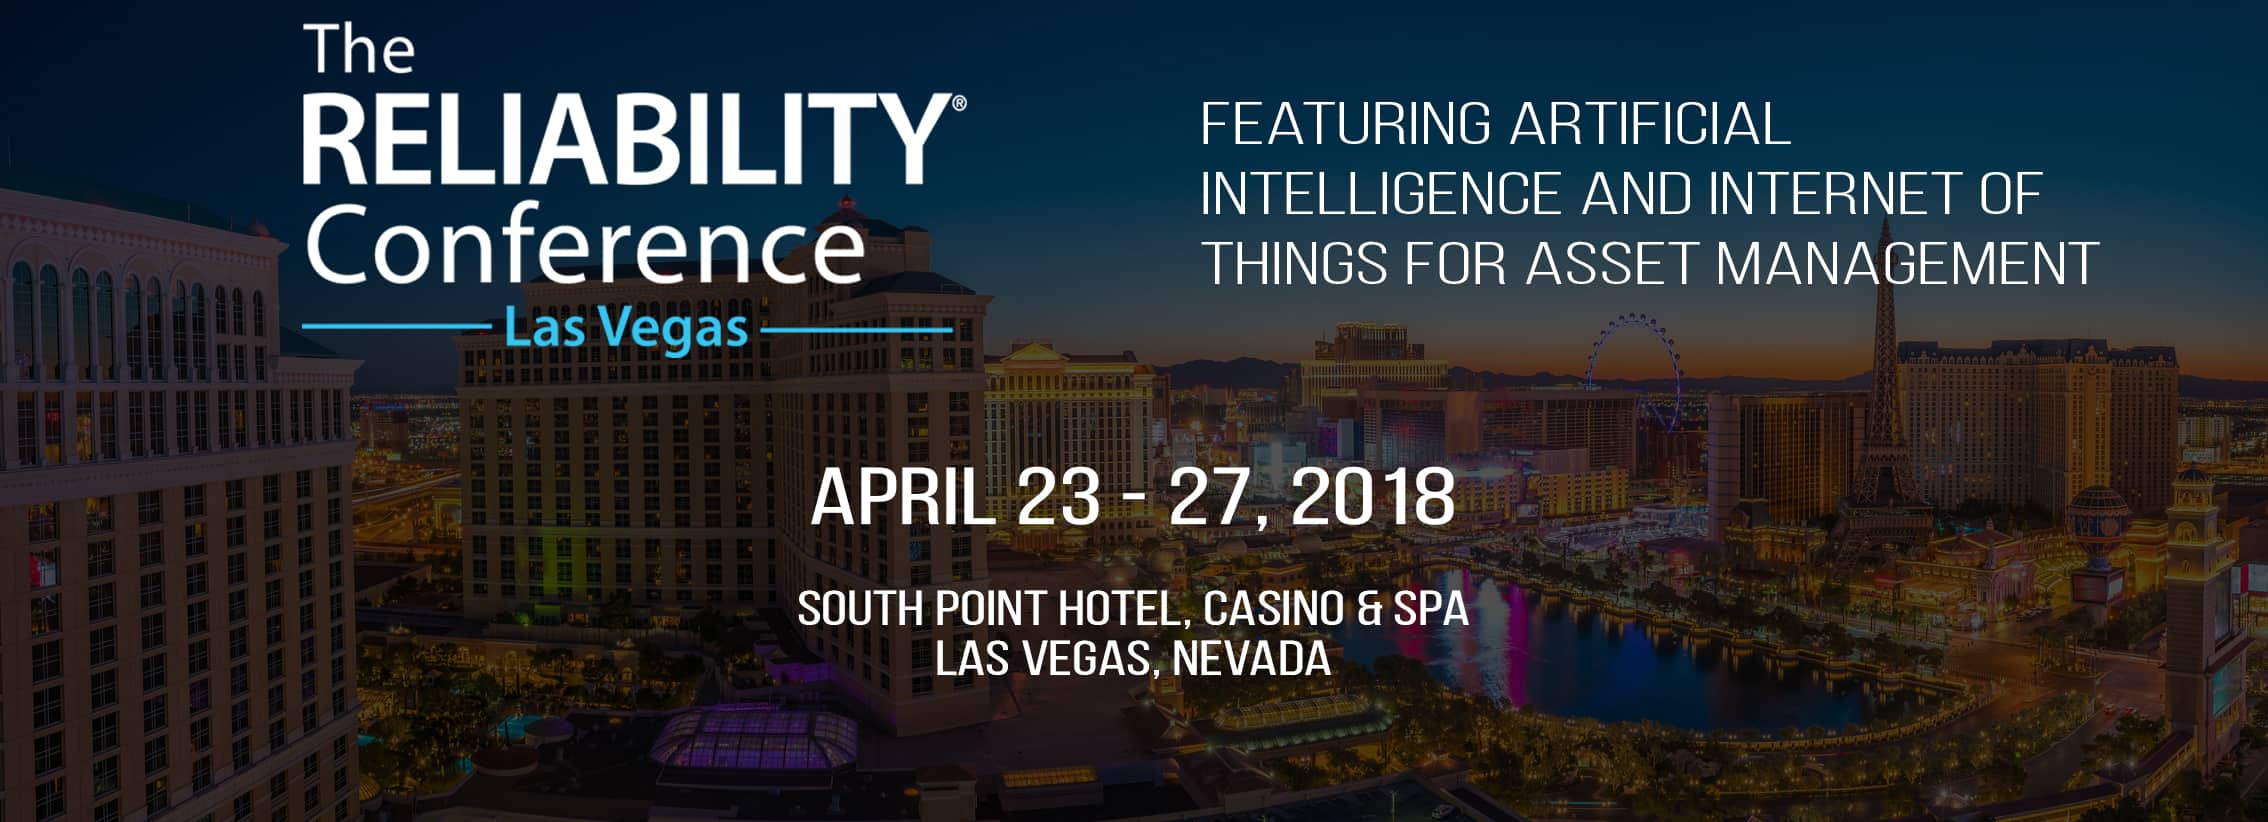 reliabilityConferenceEvent - The RELIABILITY®Conference Featuring Artificial Intelligence and Internet of Things for Asset Management